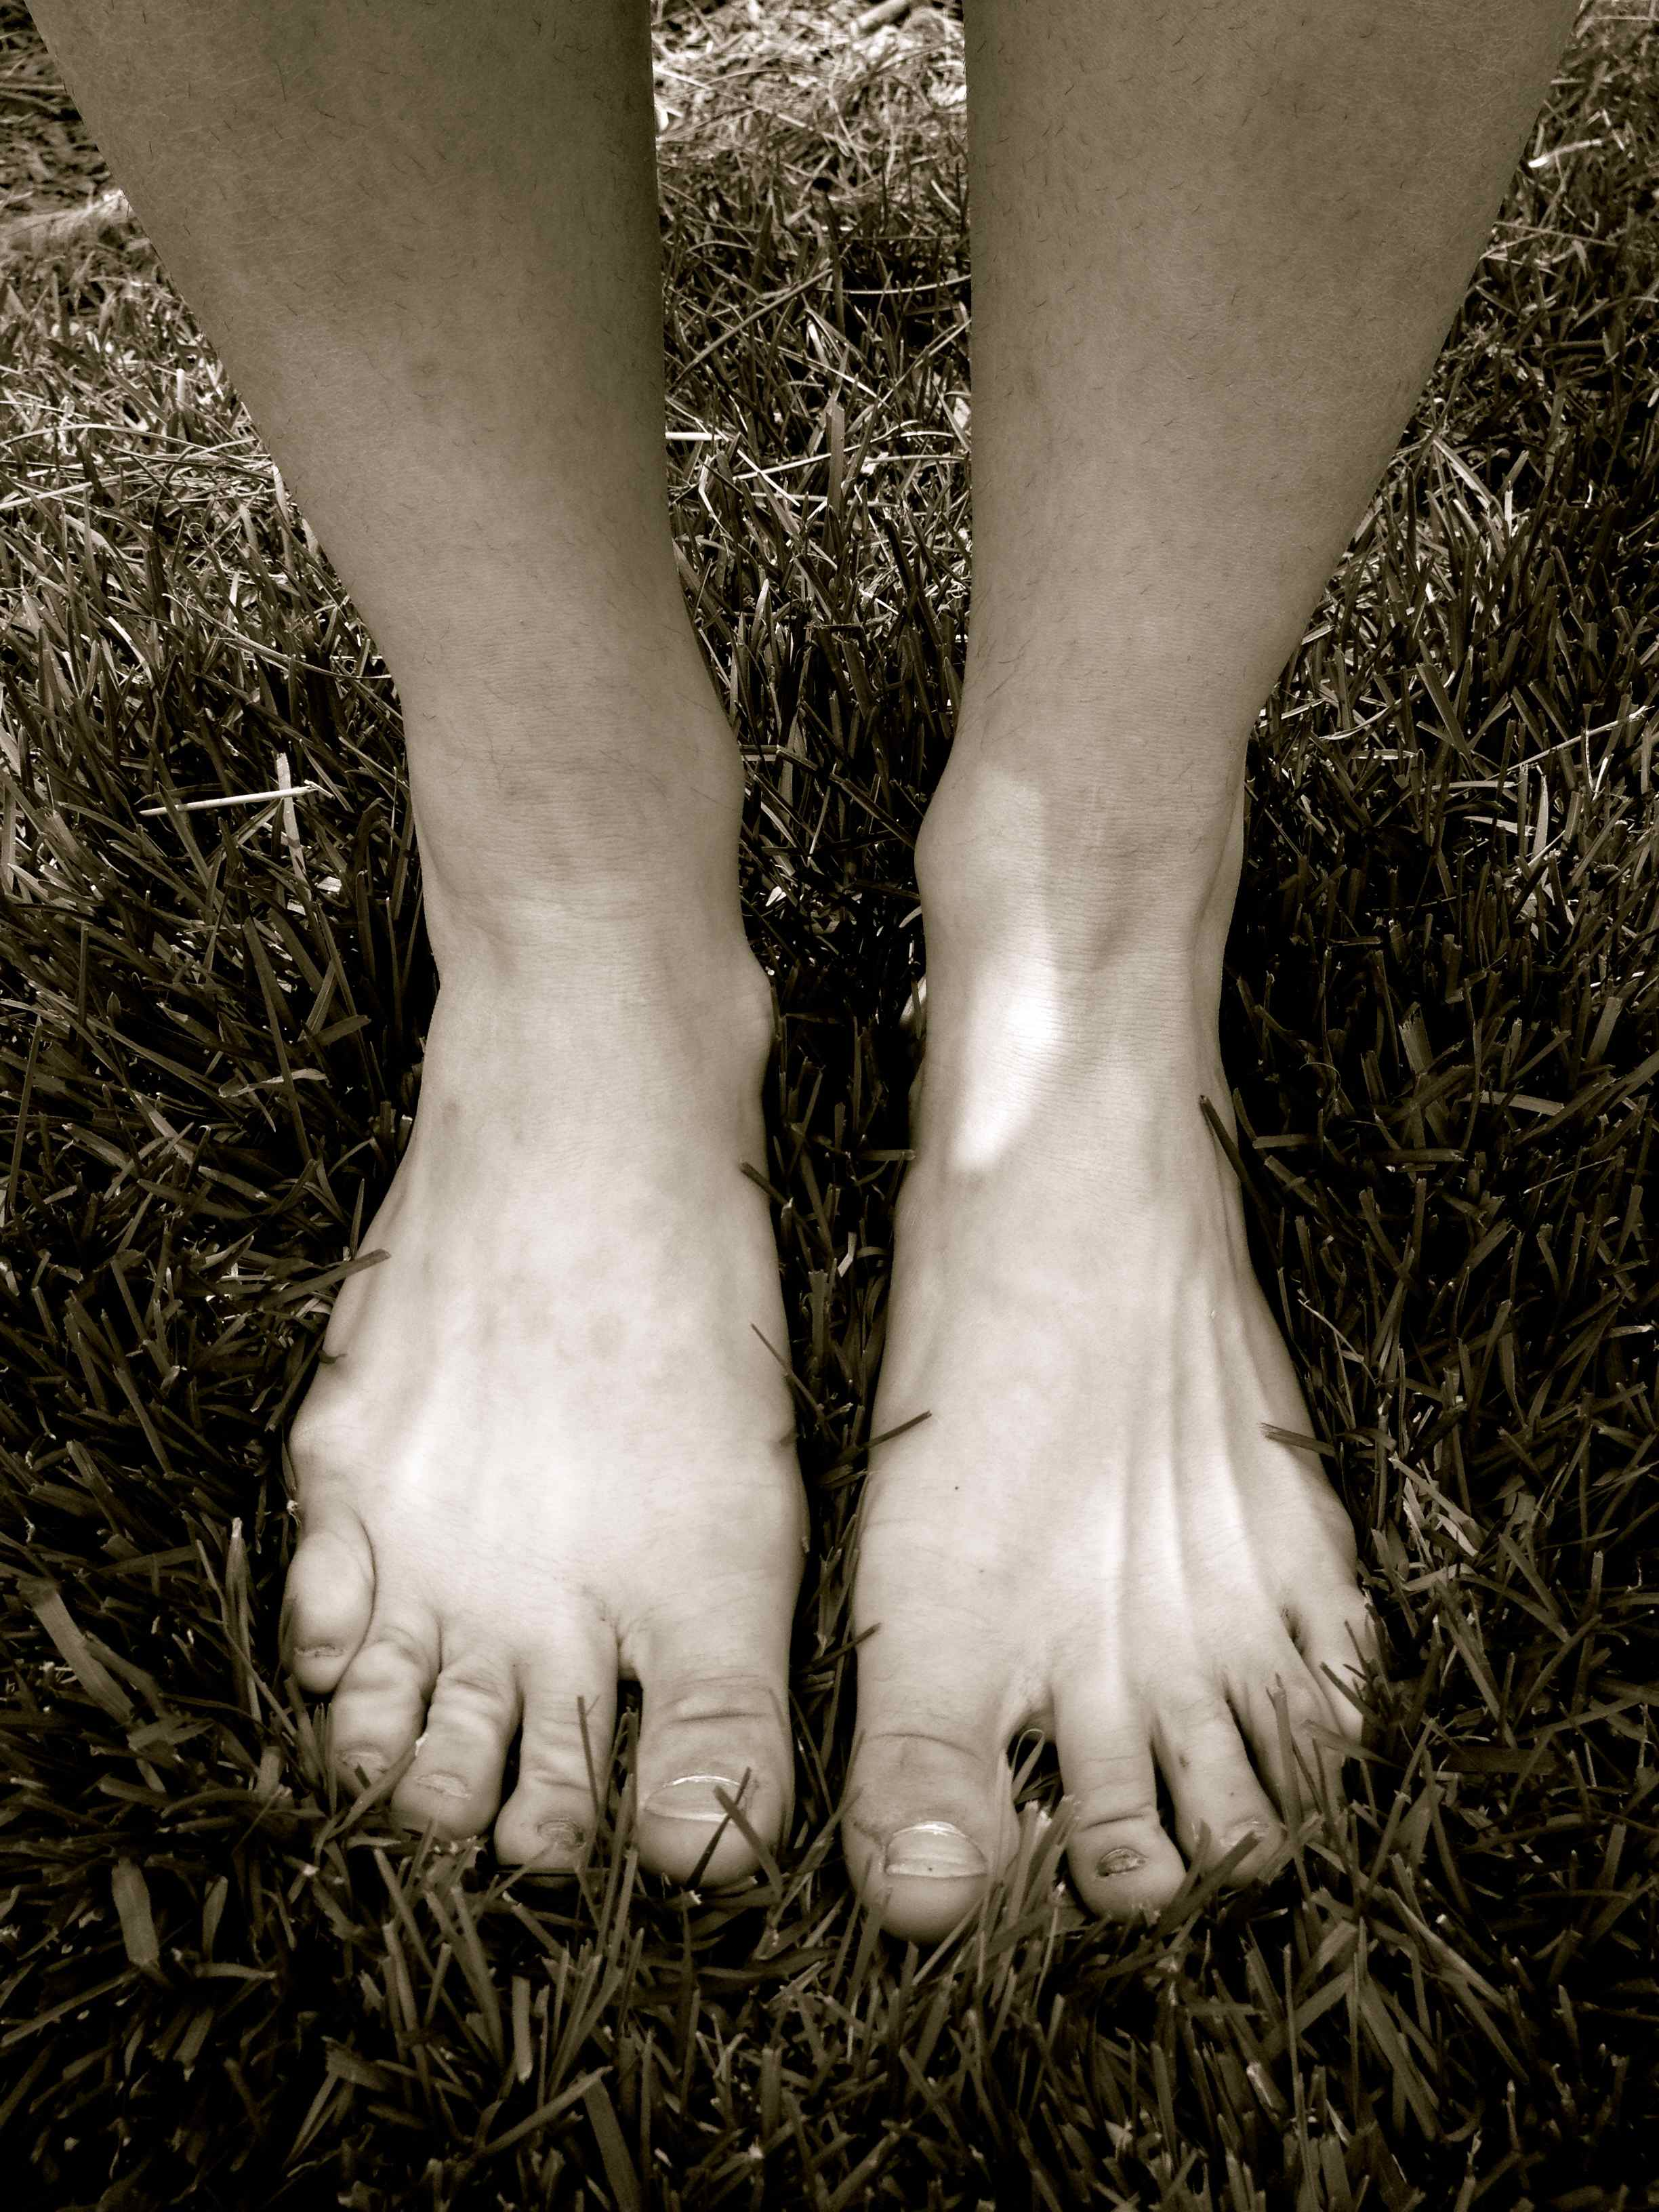 At 24, I have the bunions of a 60 year old. Surgery is